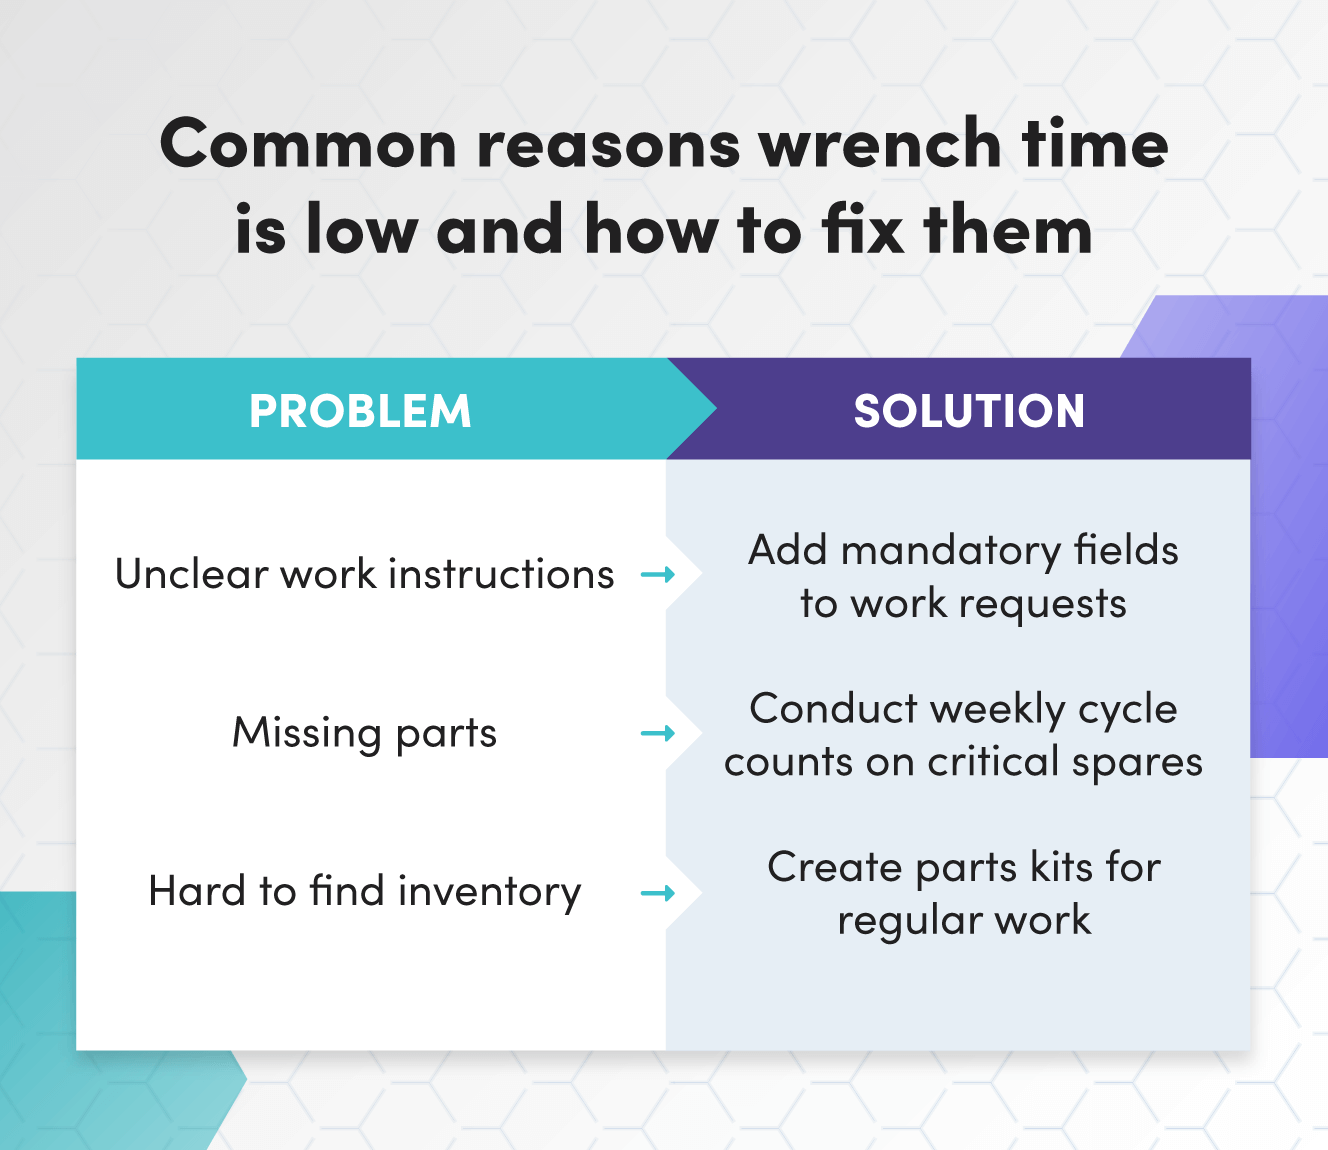 Common reasons wrench time is low and how to fix them